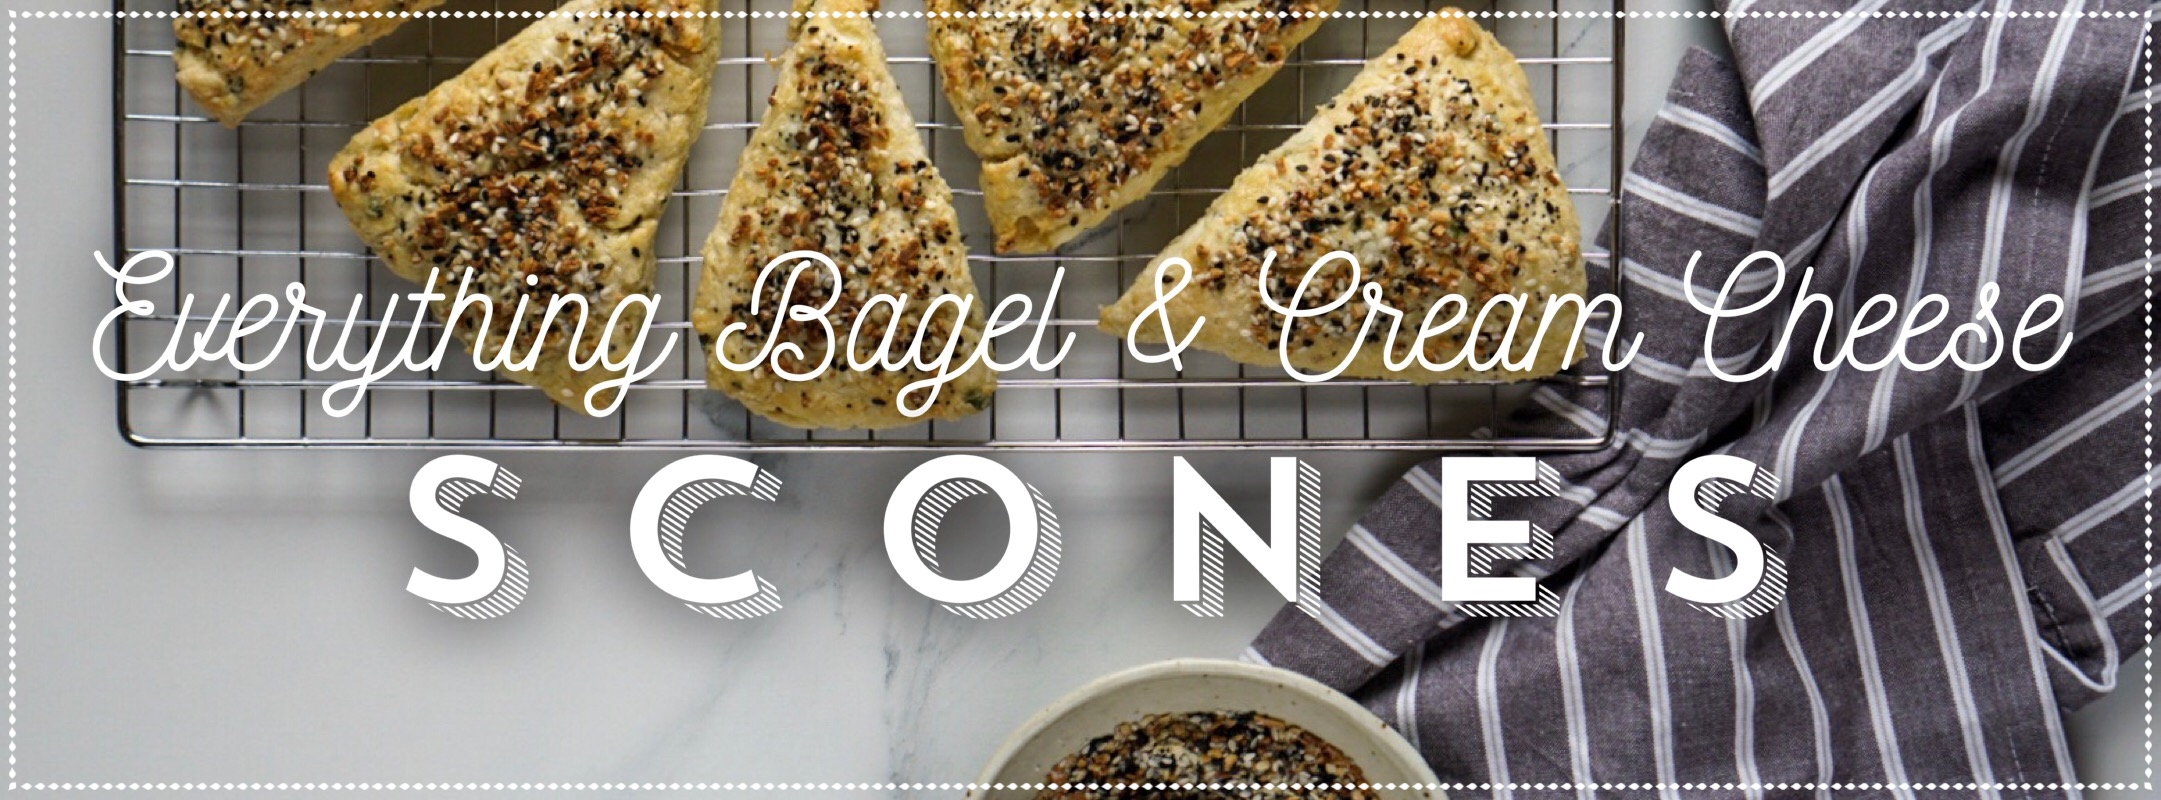 Everything Bagel With Cream Cheese Scones